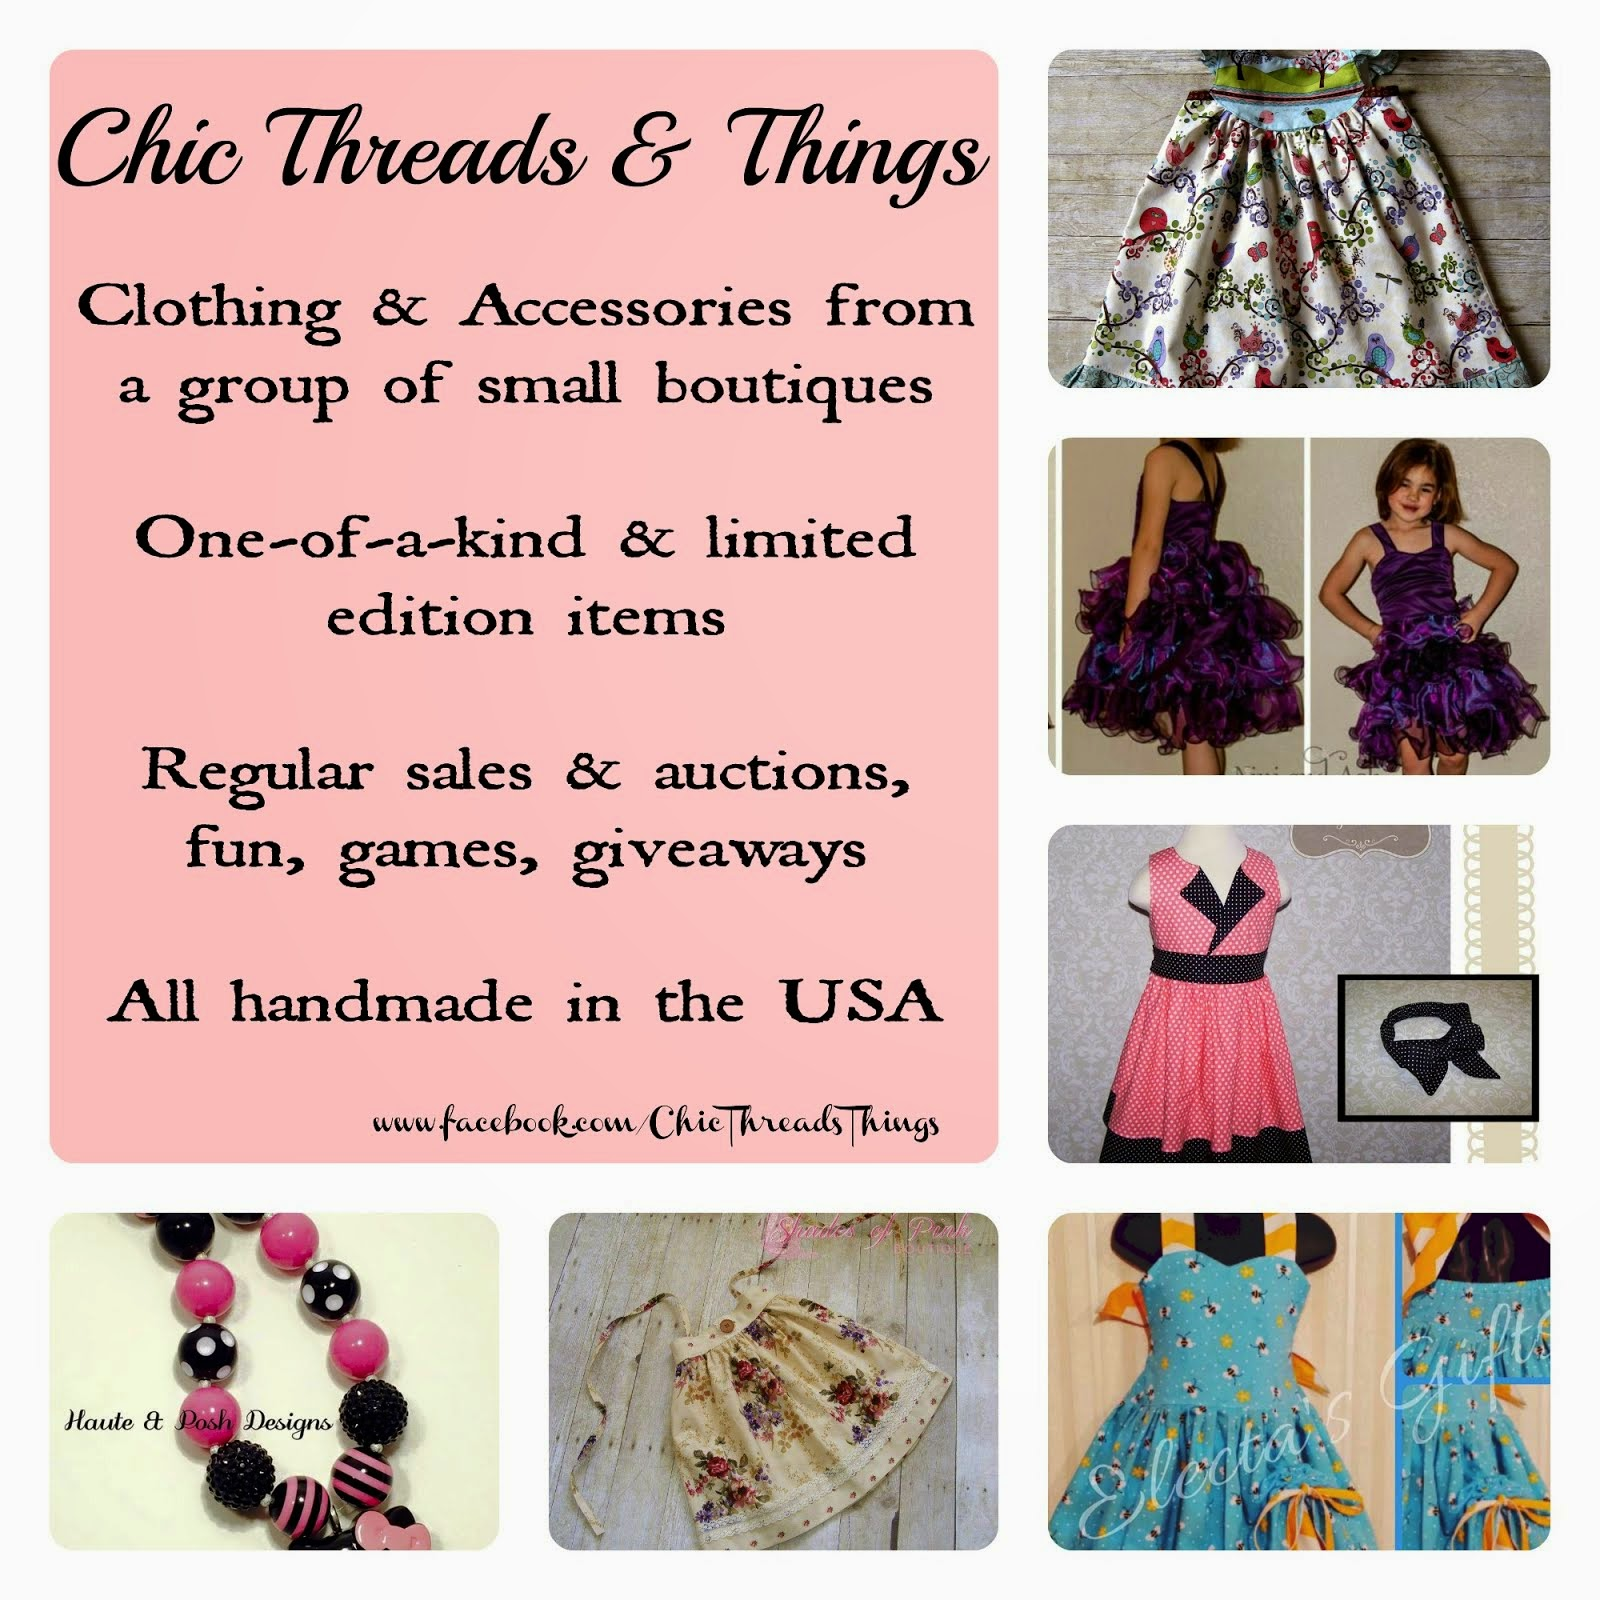 I also sell my beautiful sewing creations at Chic Threads & Things!